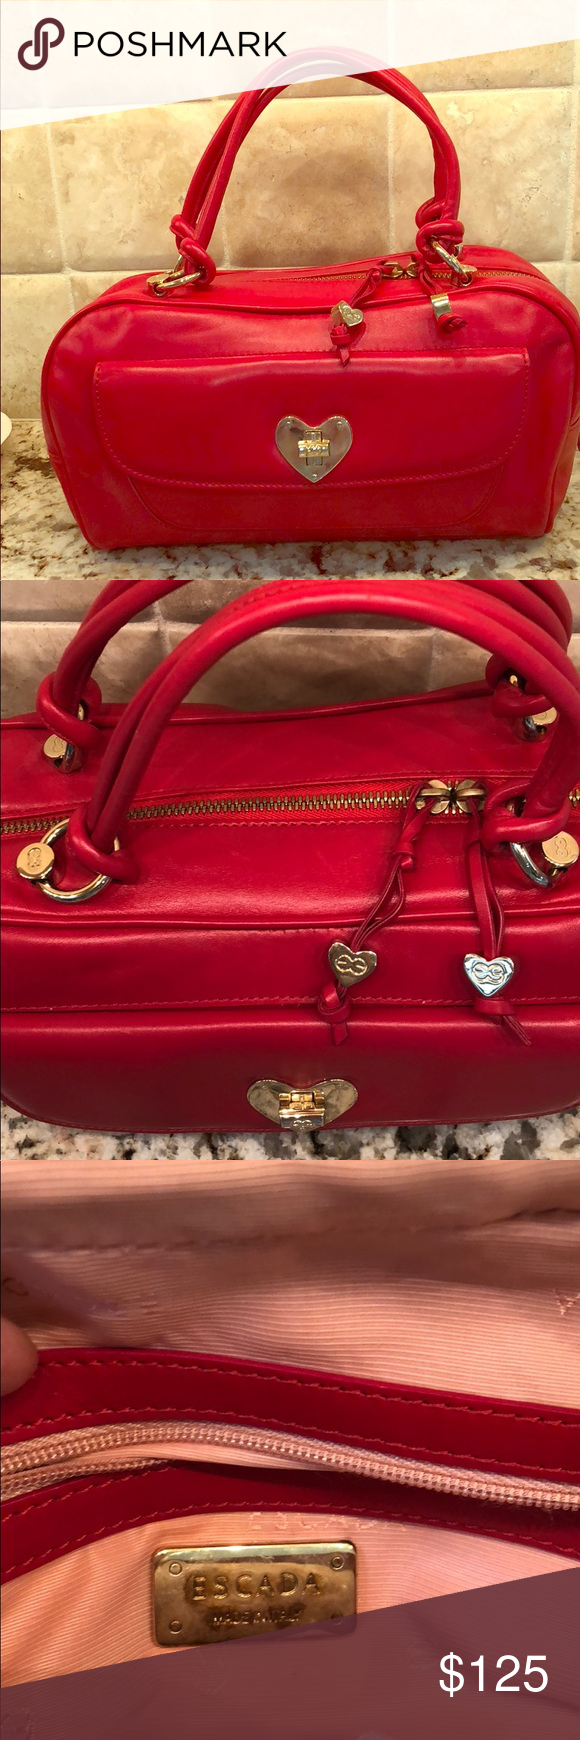 879fb6a371 Purse Escada red leather bag Escada Bags Mini Bags